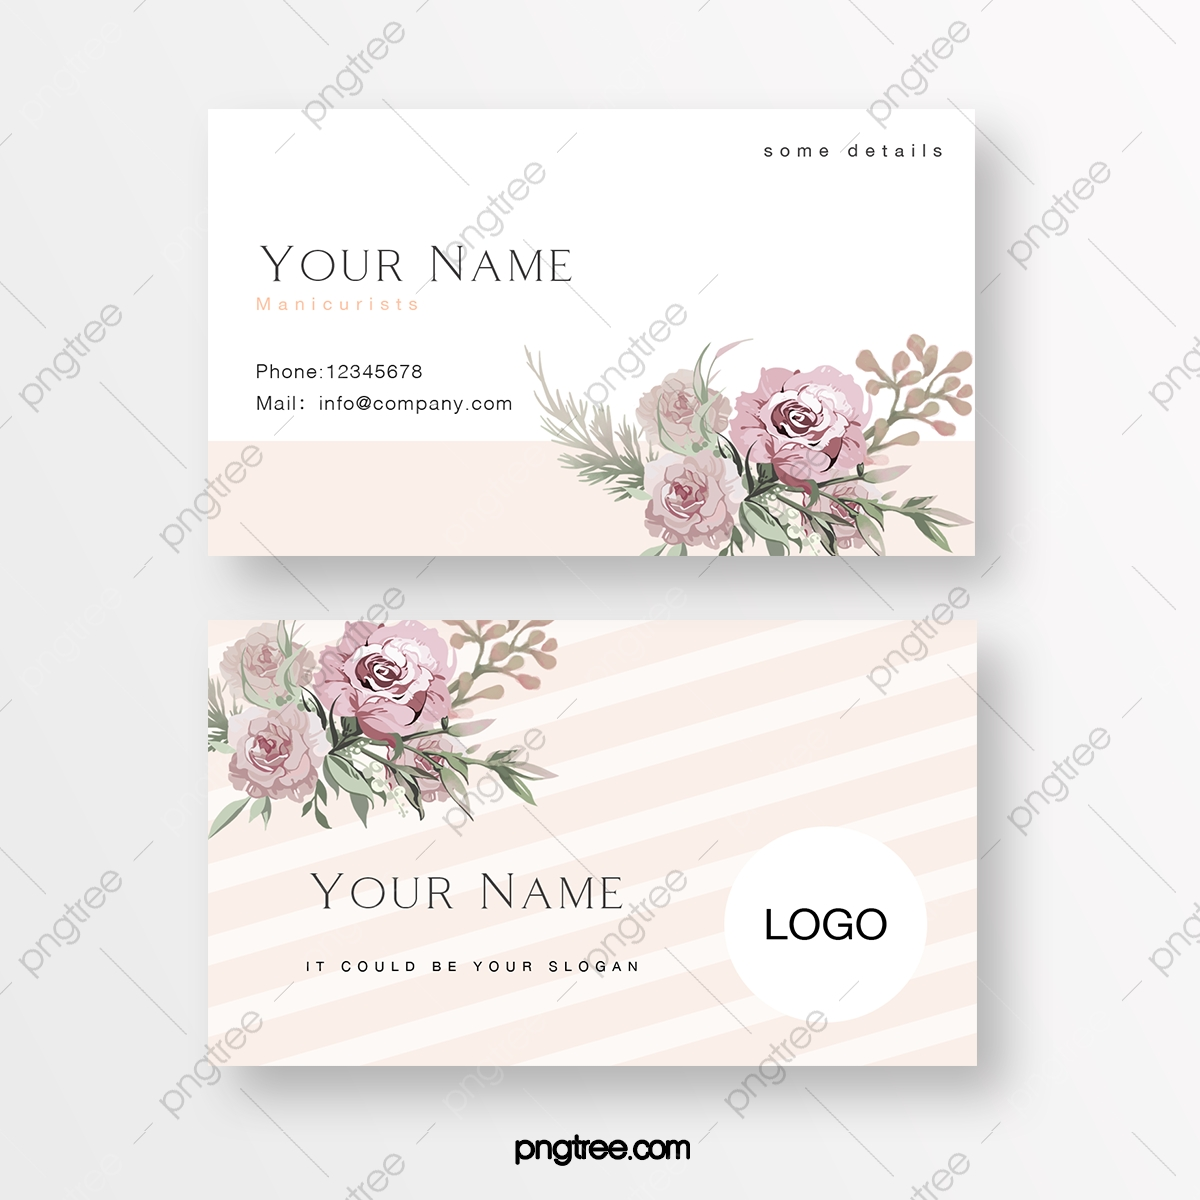 Pink Simple Flower Business Card Template Download on Pngtree